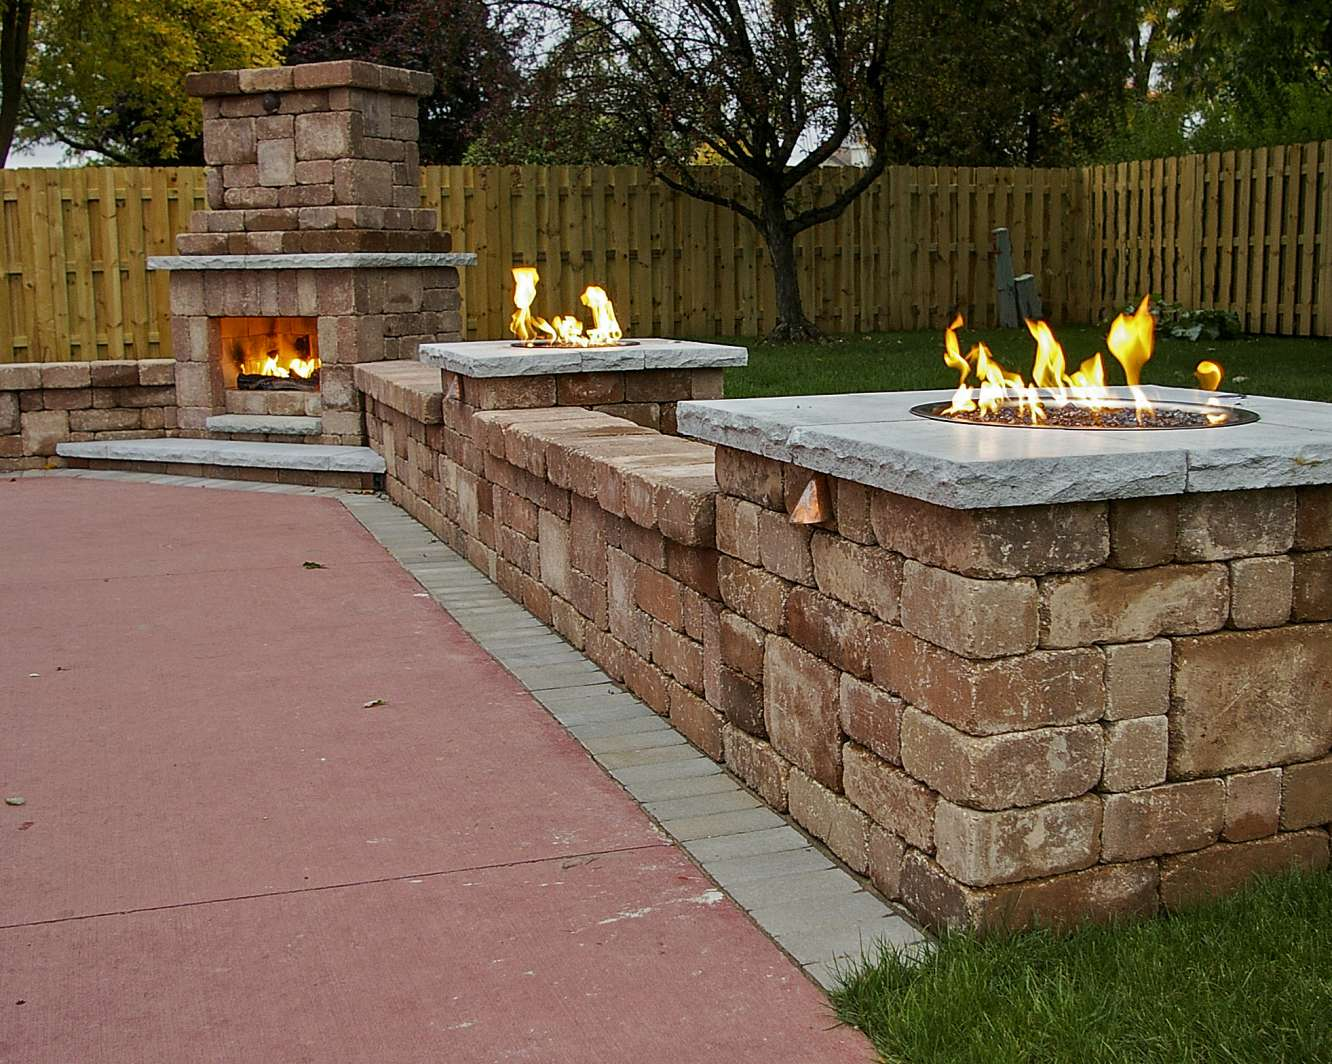 Outdoor Fireplace Landscaping Design in Appleton, WI on Outdoor Fireplaces Ideas id=15626